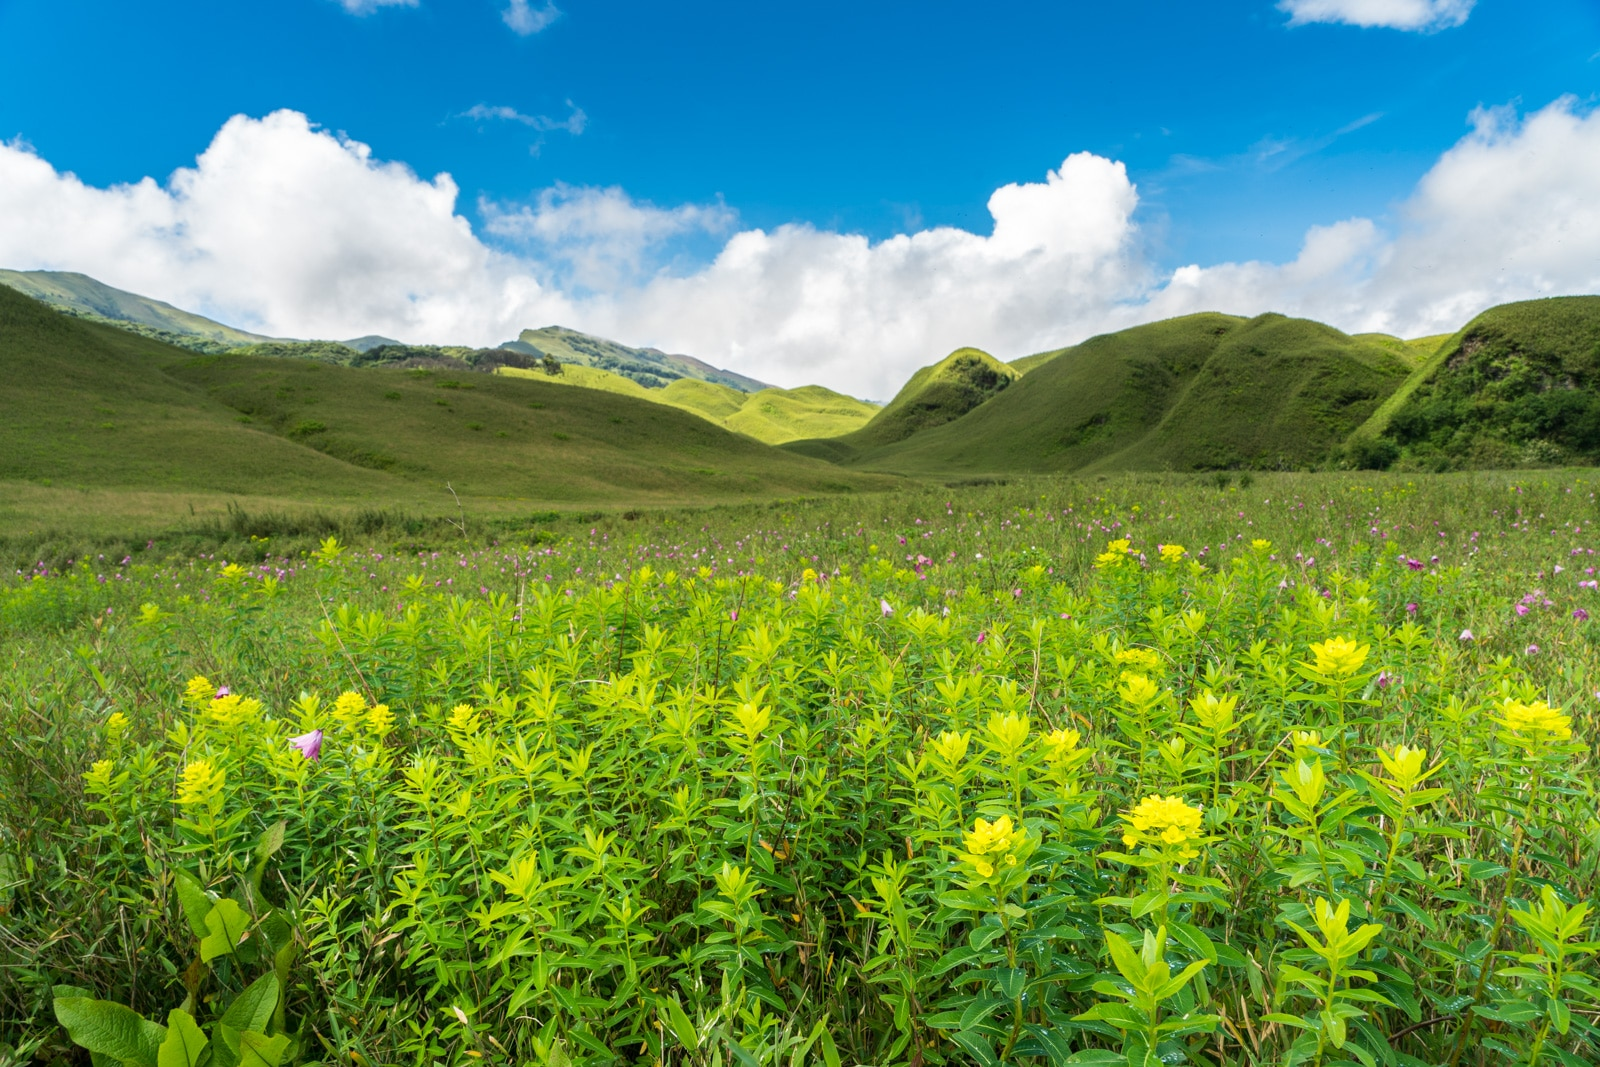 Yellow flowers blooming in Dzukou Valley